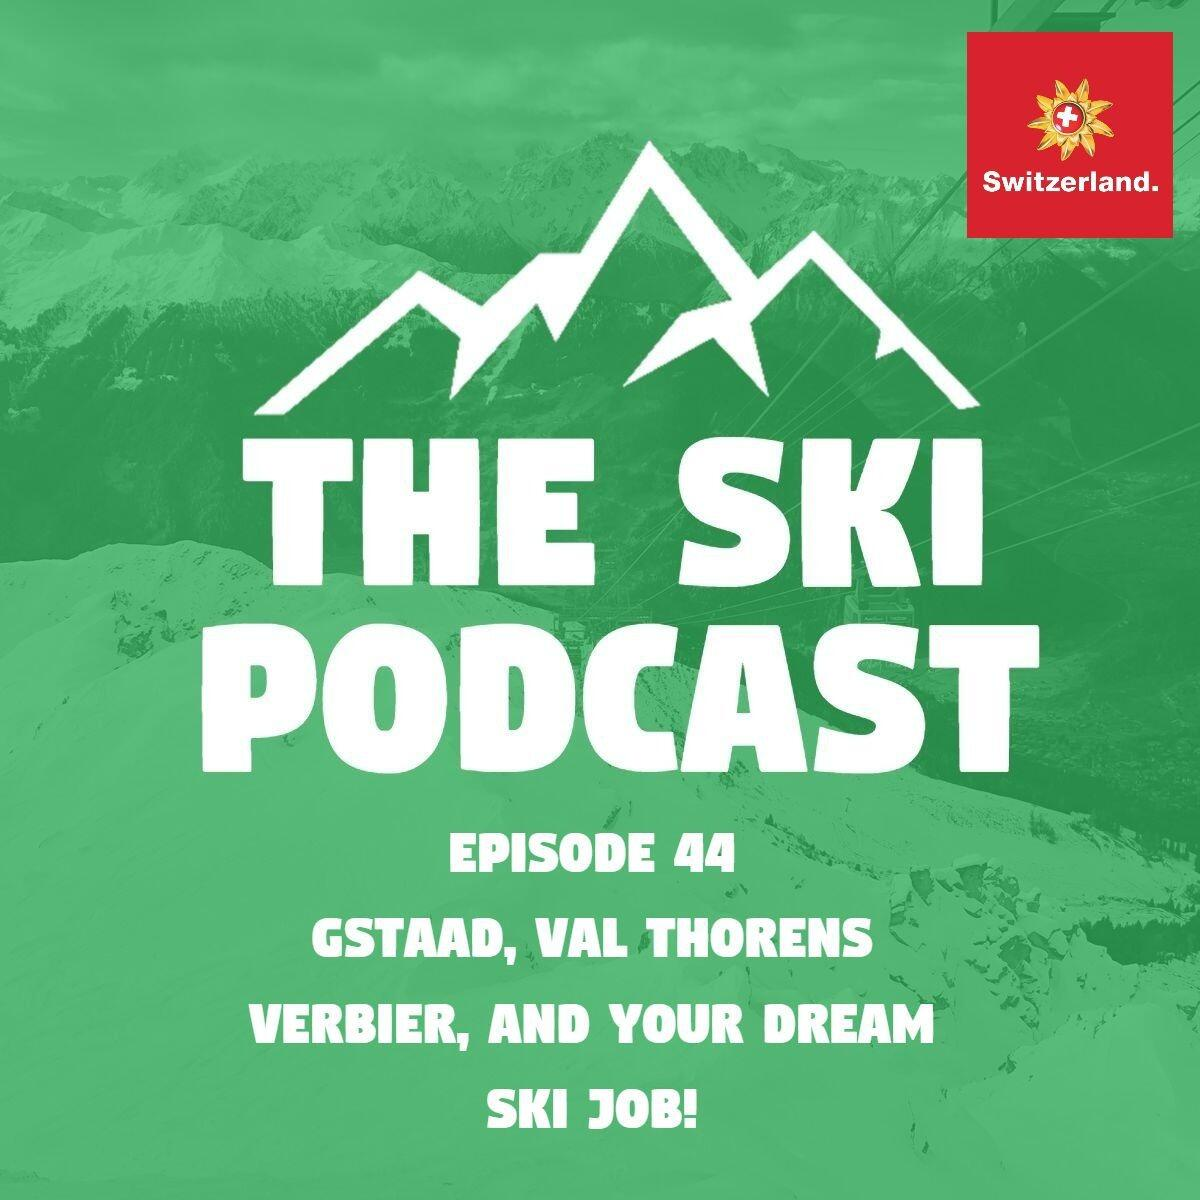 44: Gstaad, Val Thorens, Verbier, and your dream ski job!